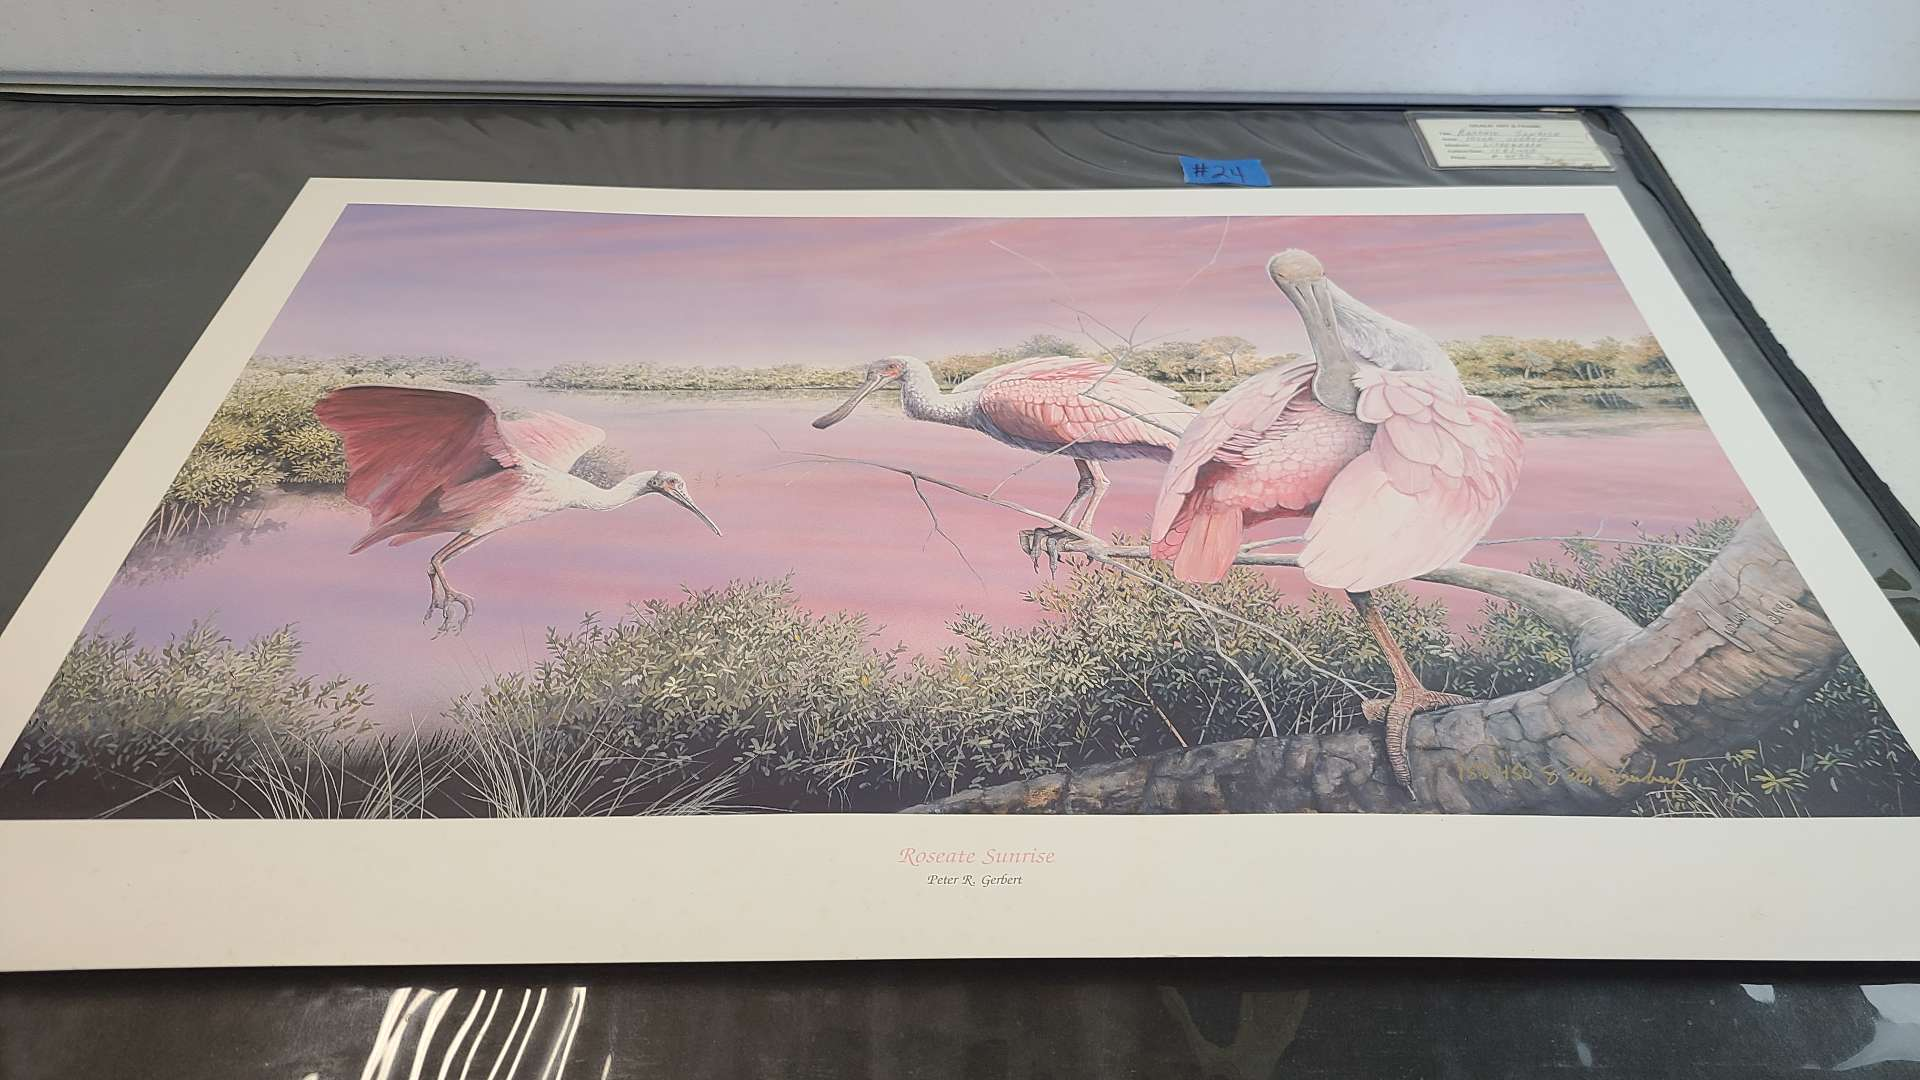 Lot # 24 Lot of 2 Bird Inspired Signed & Numbered Lithographs